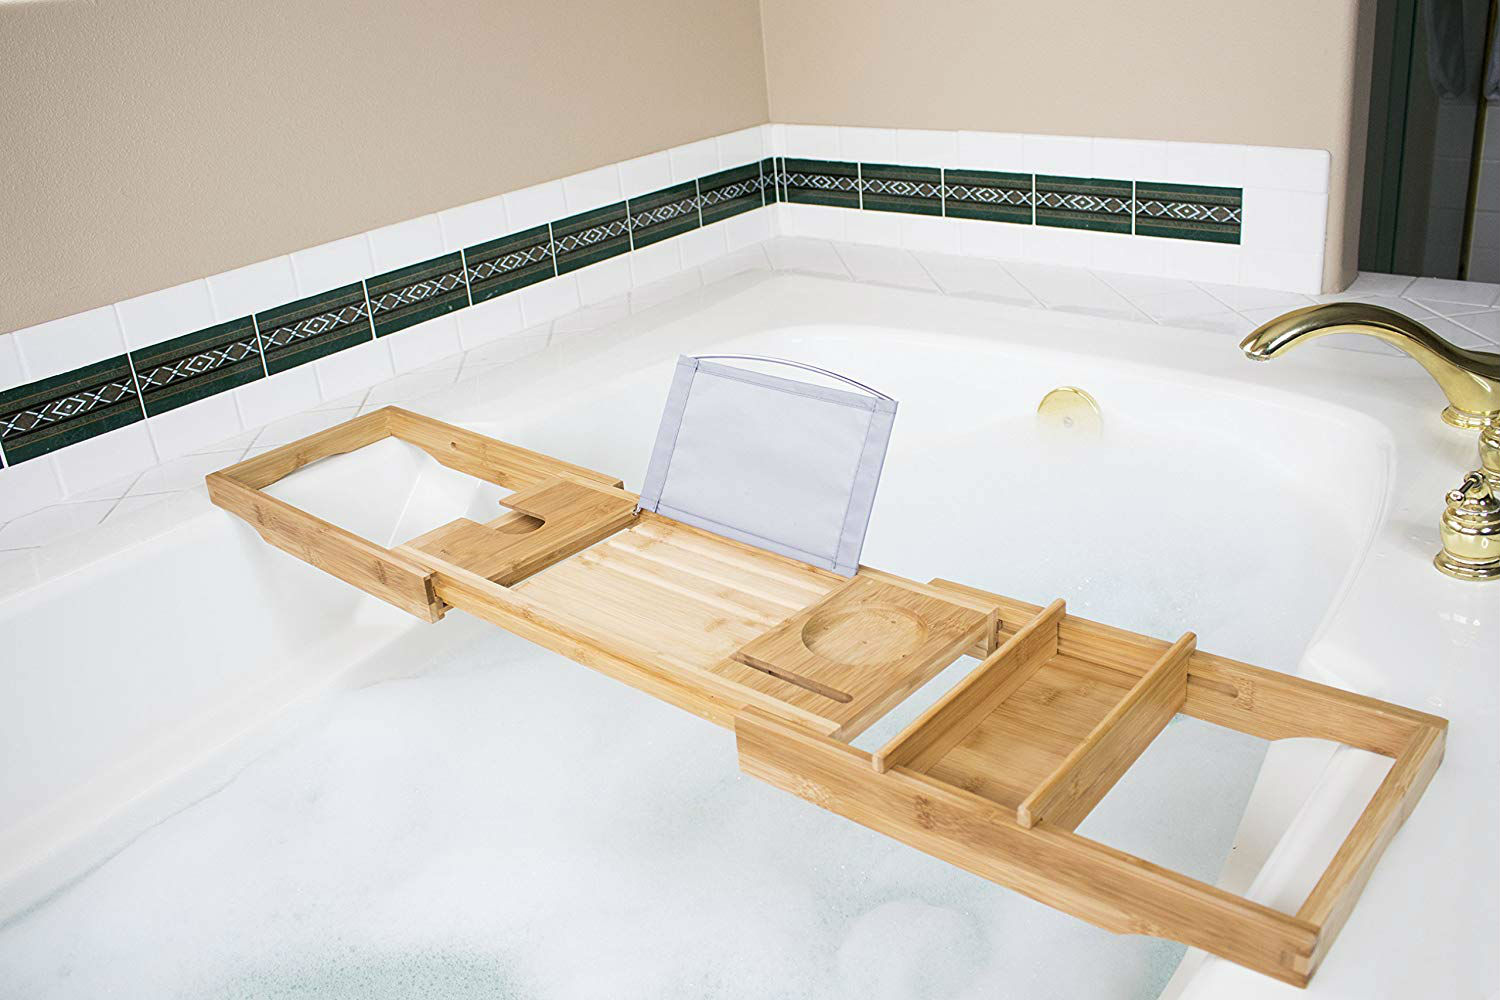 Handgefertigter Bath Caddy mit Weinhalter Bambus Badewanne Caddy Tablett